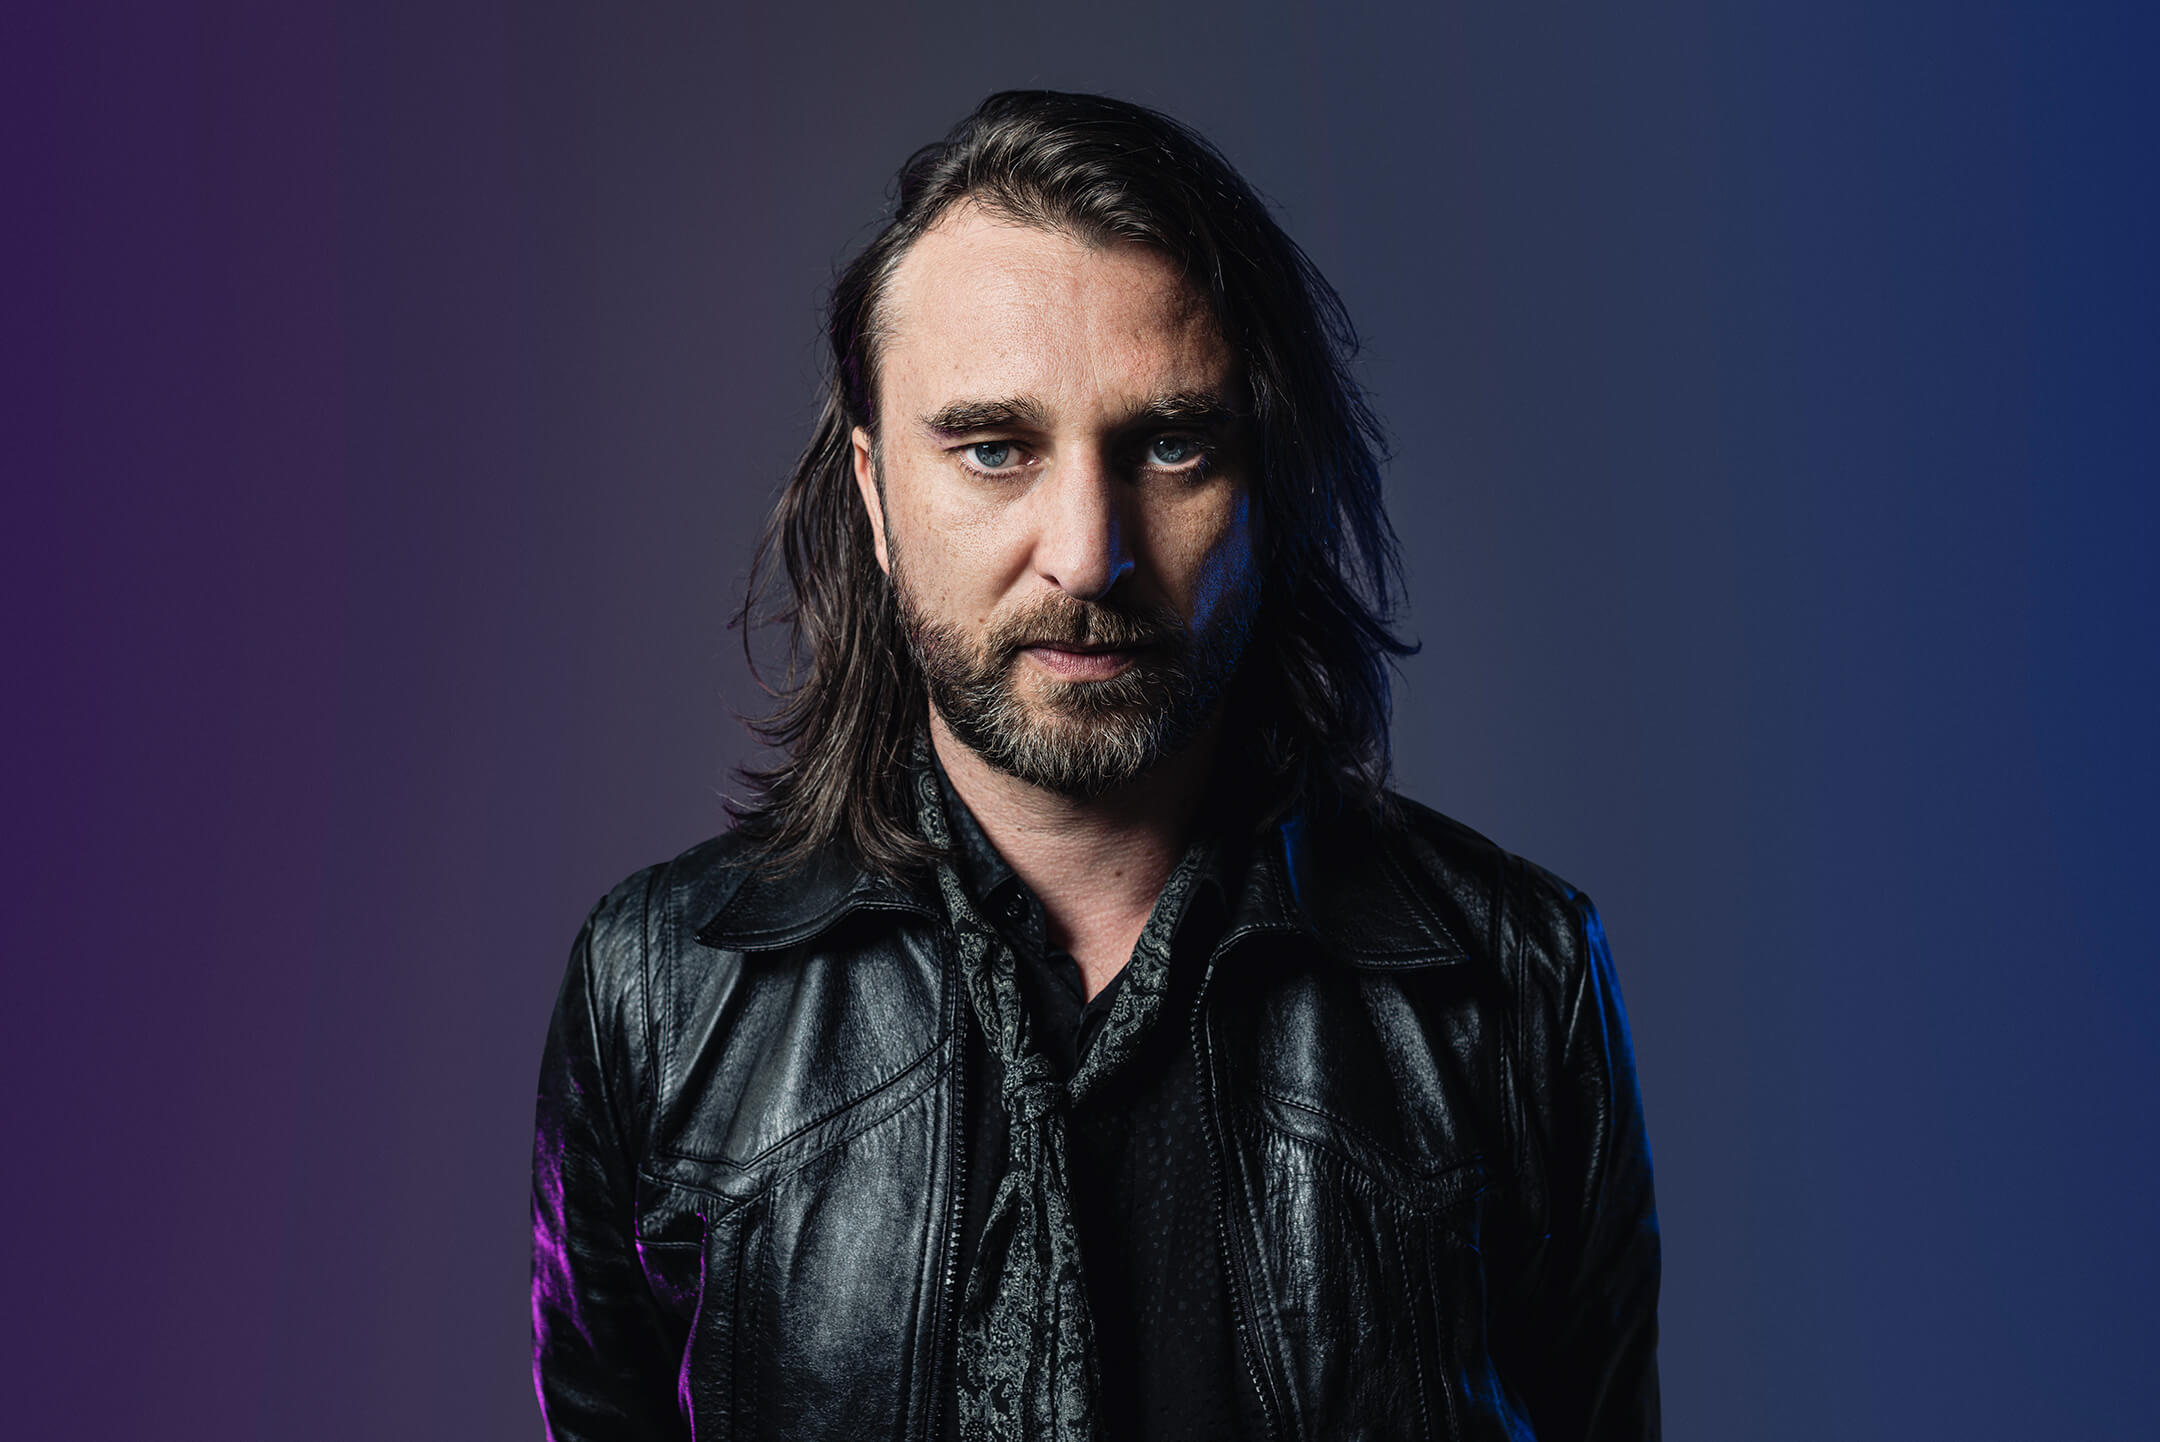 Nic Cester of Jaded Hearts Club